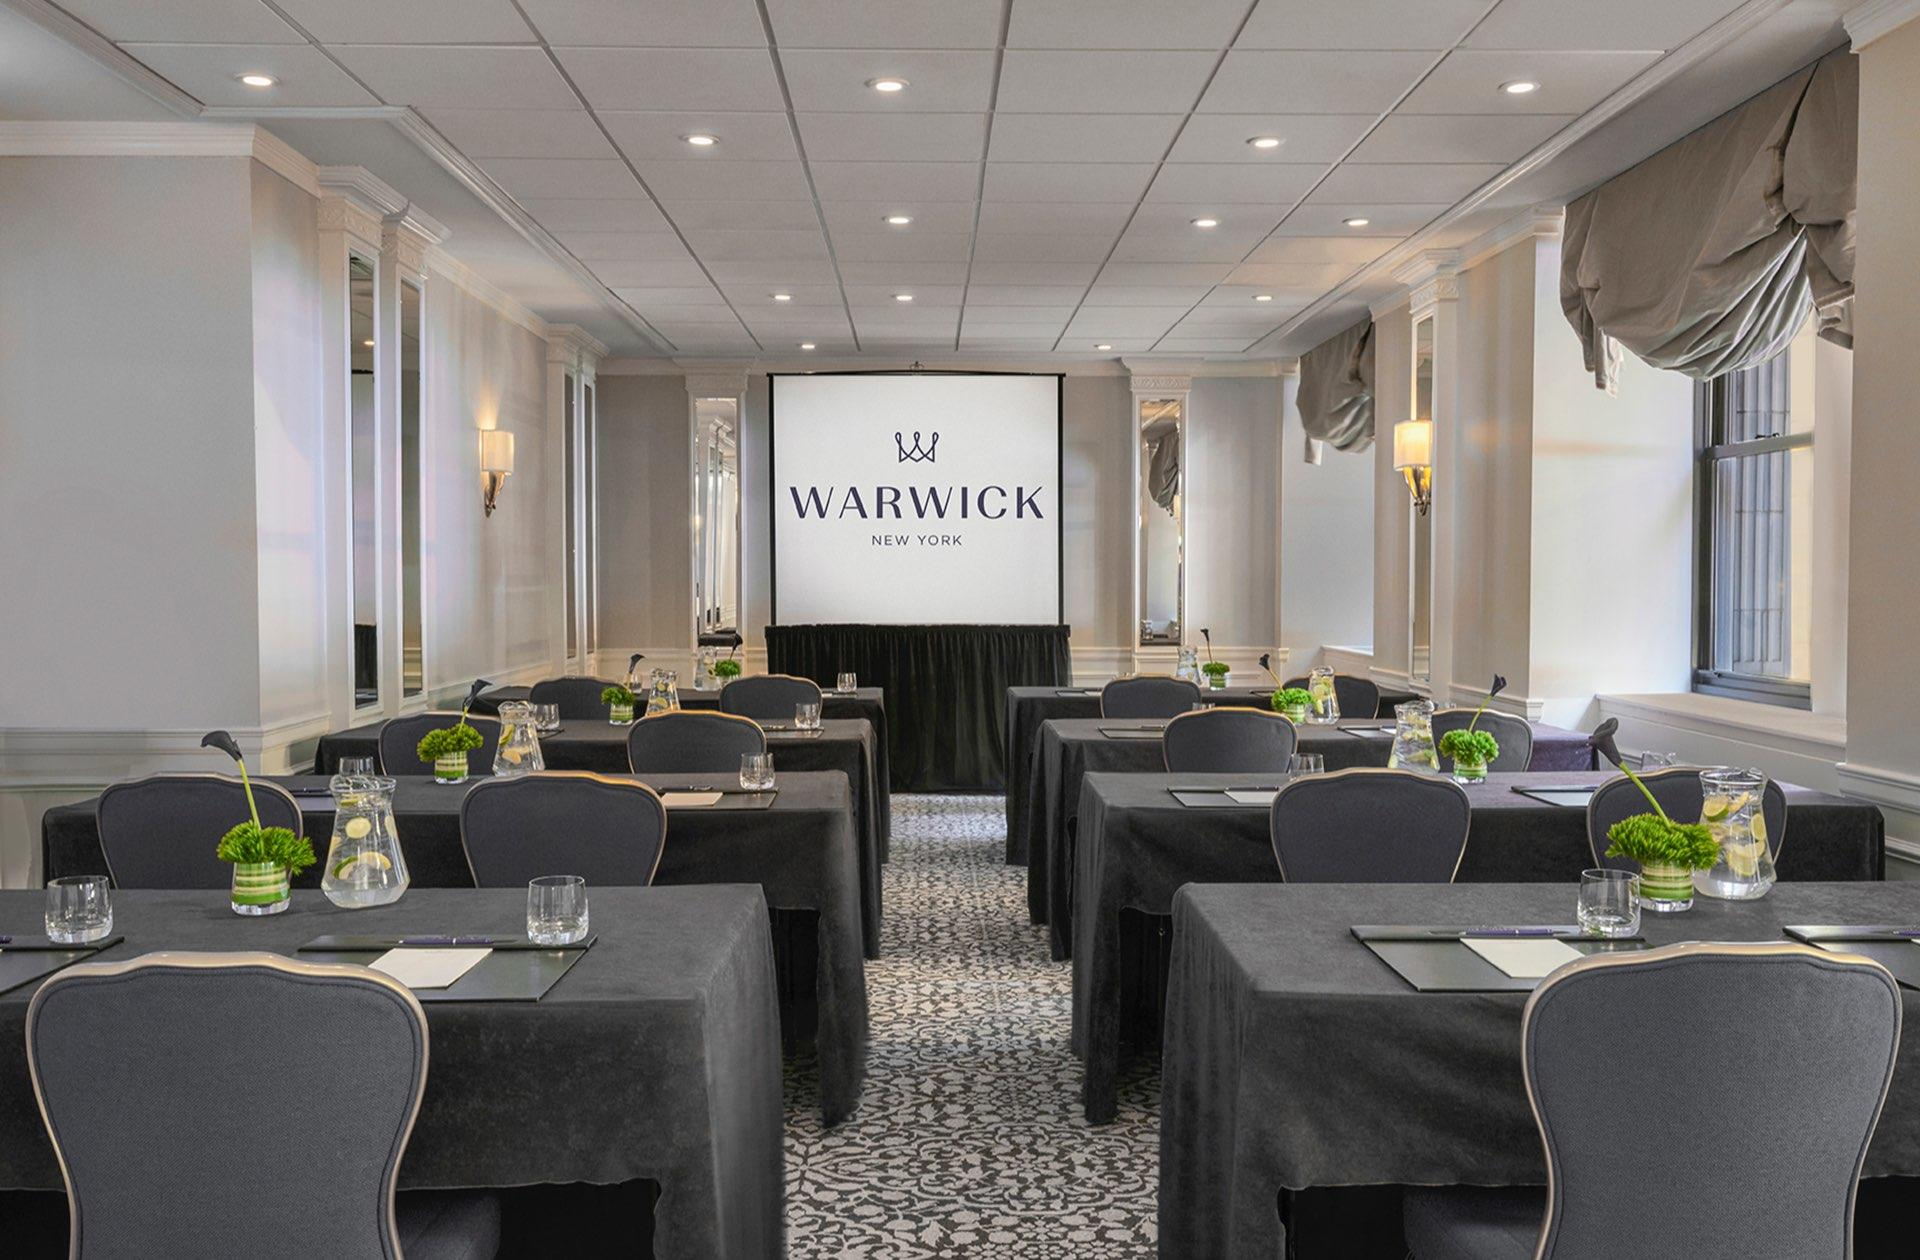 Essex Meeting Room at Warwick New York